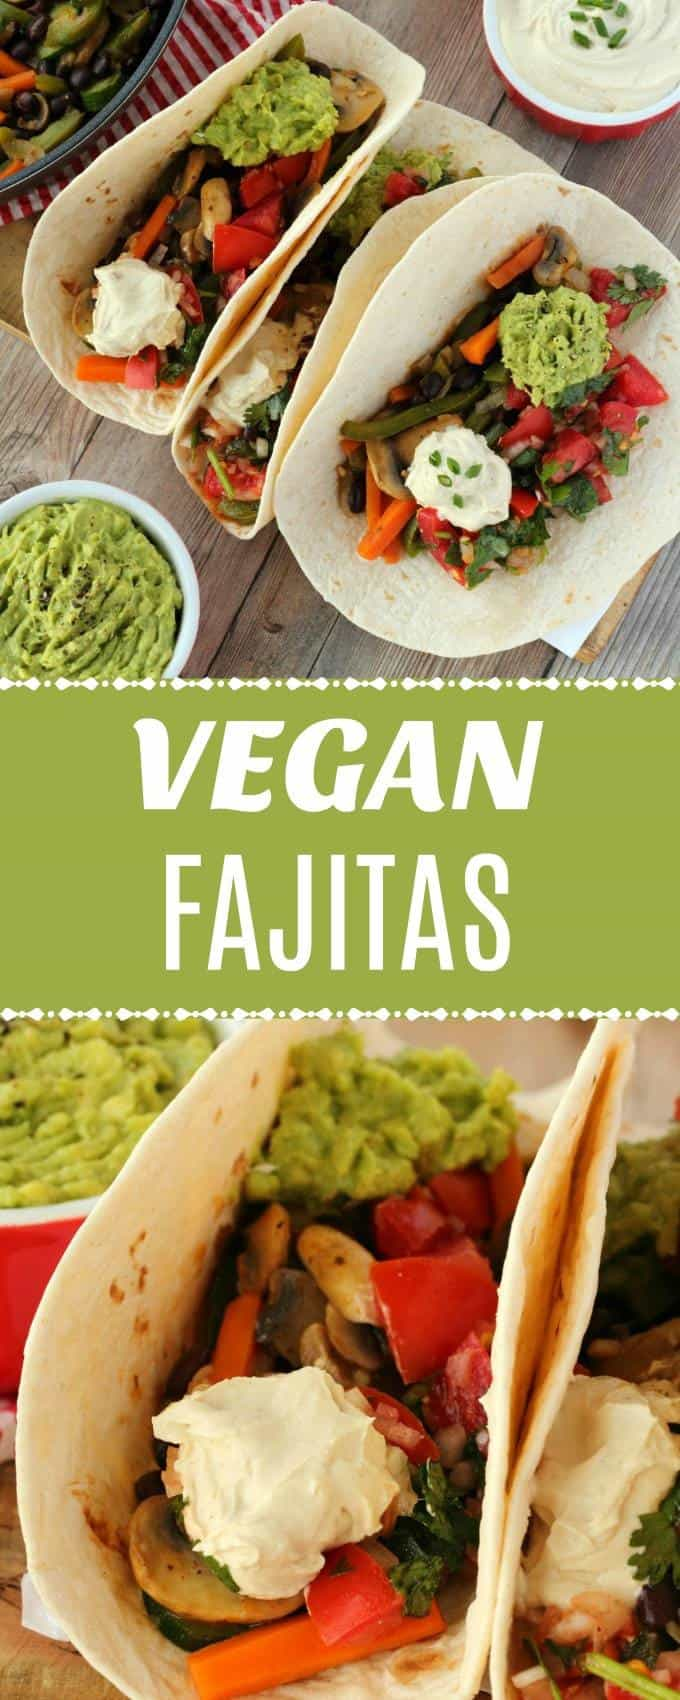 Easy and delicious veggie fajitas! Sautéed veggies plus salsa, guacamole and vegan sour cream in a tortilla is always going to be a winner! These vegan fajitas are filling, satisfying and make a fabulous plant-based dinner. | lovingitvegan.com